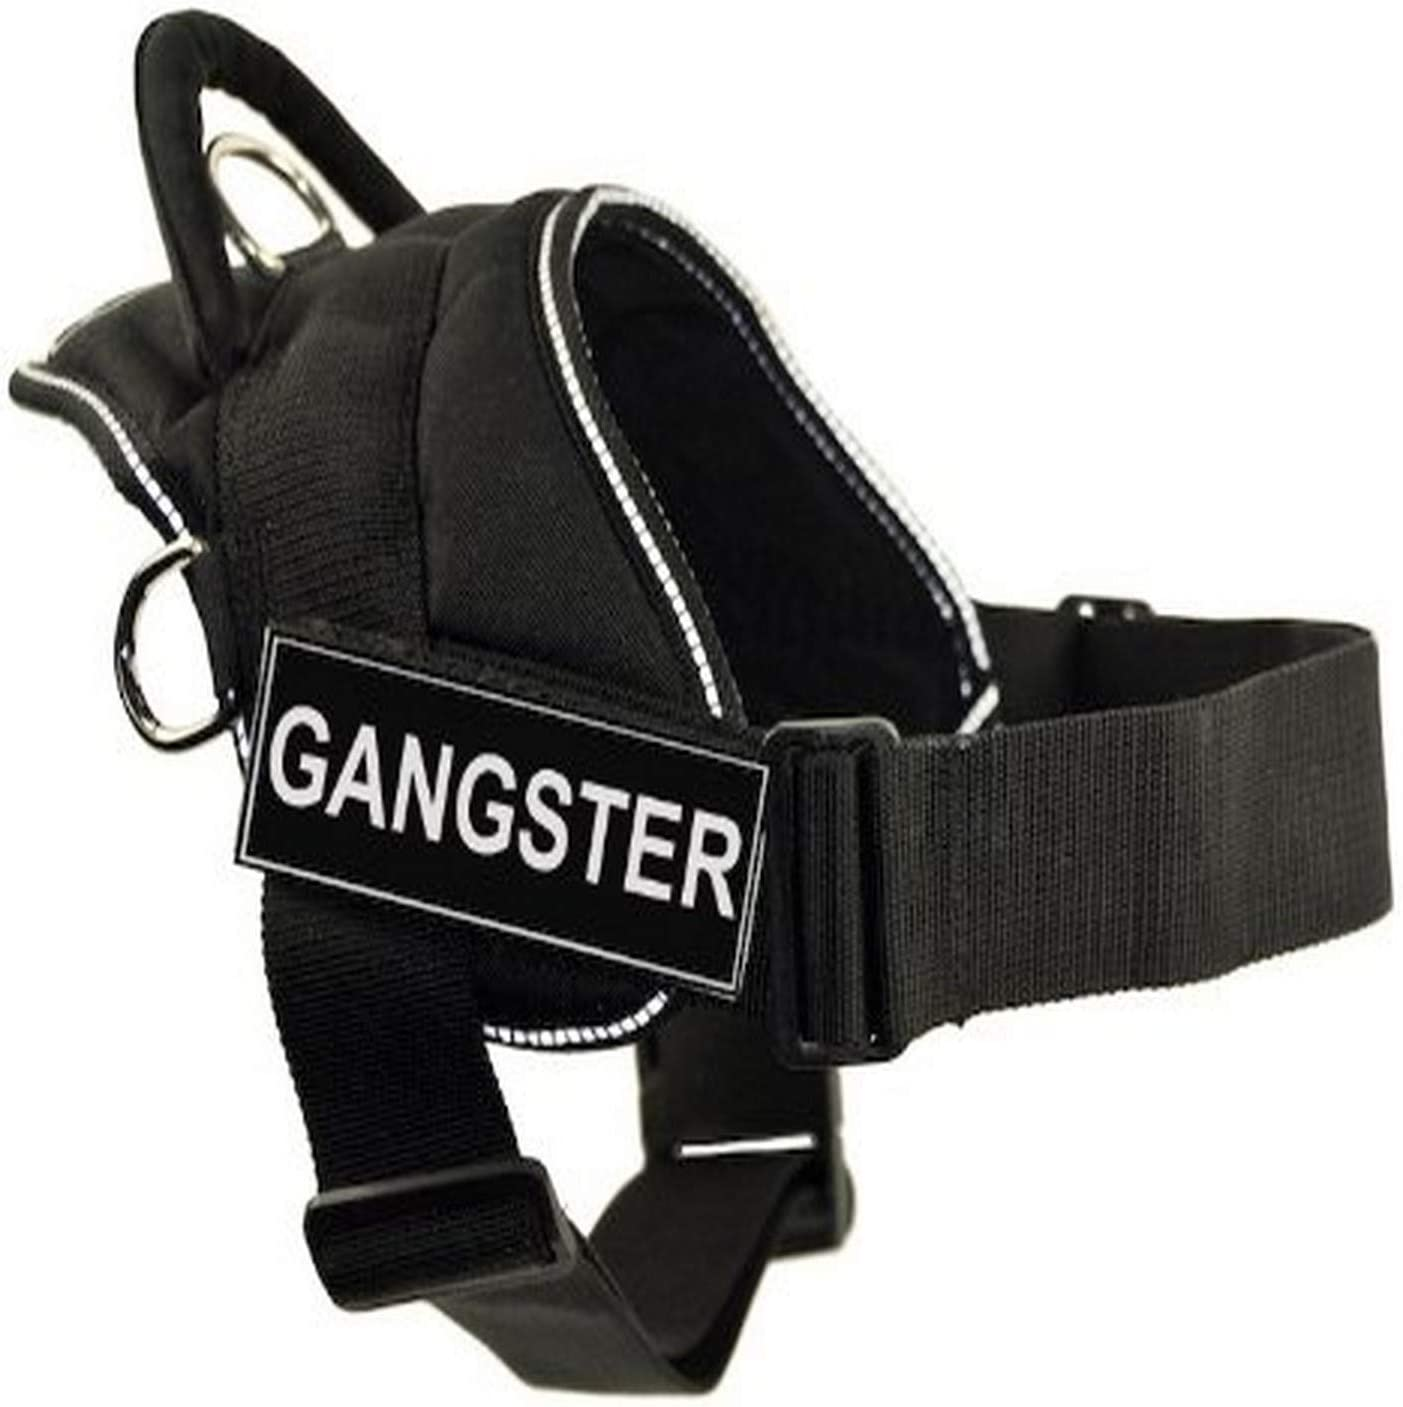 DT Fun Harness Gangster Black Reflective With - X-Small Recommendation Trim Excellence